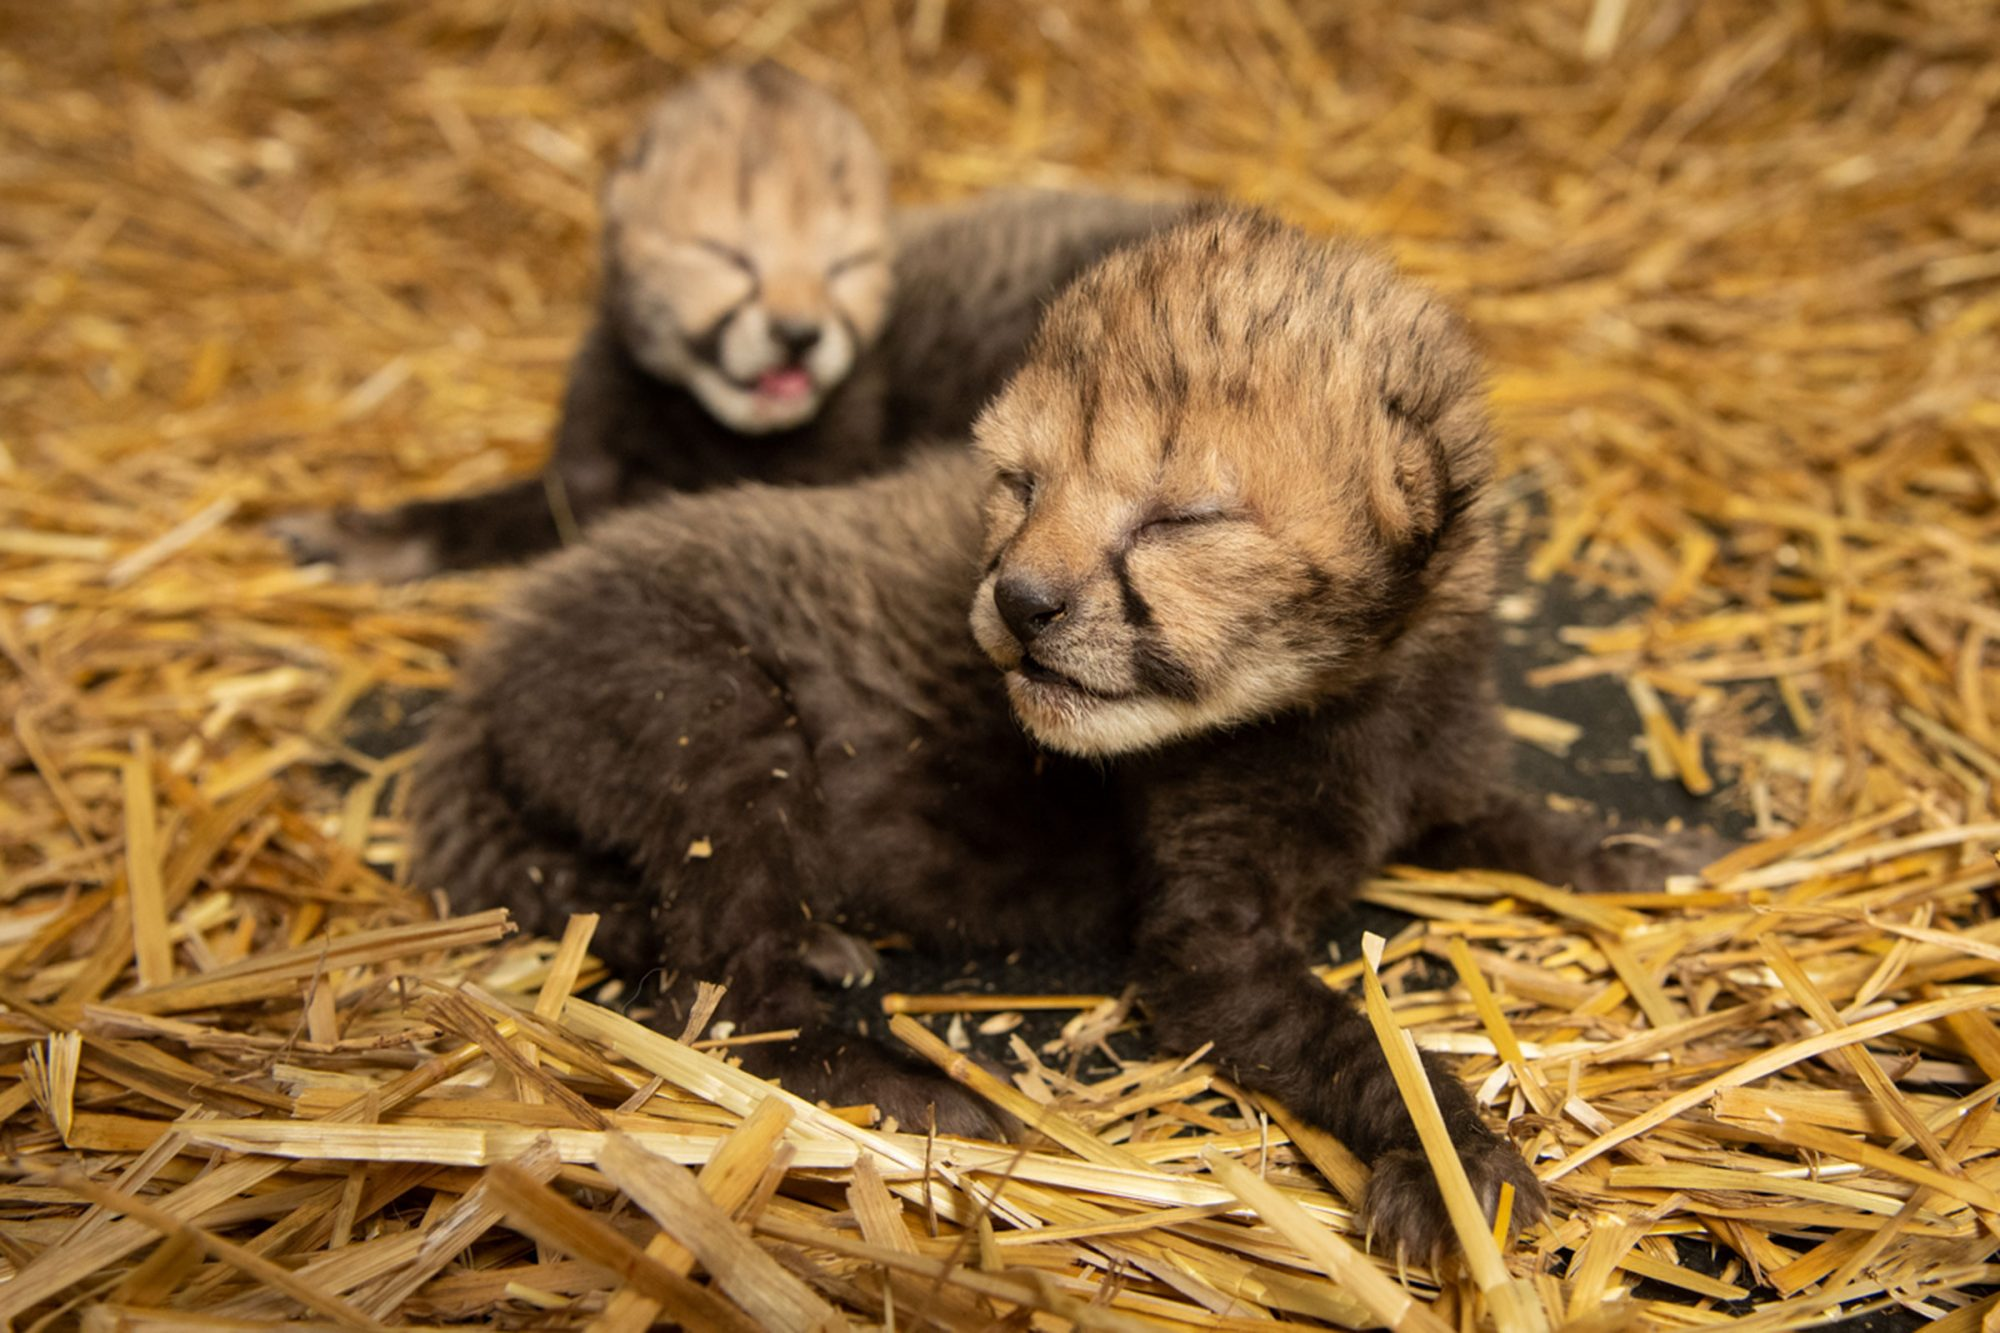 Two Cheetah Cubs Born Via IVF for the First Time in a 'Ground-Breaking Procedure'